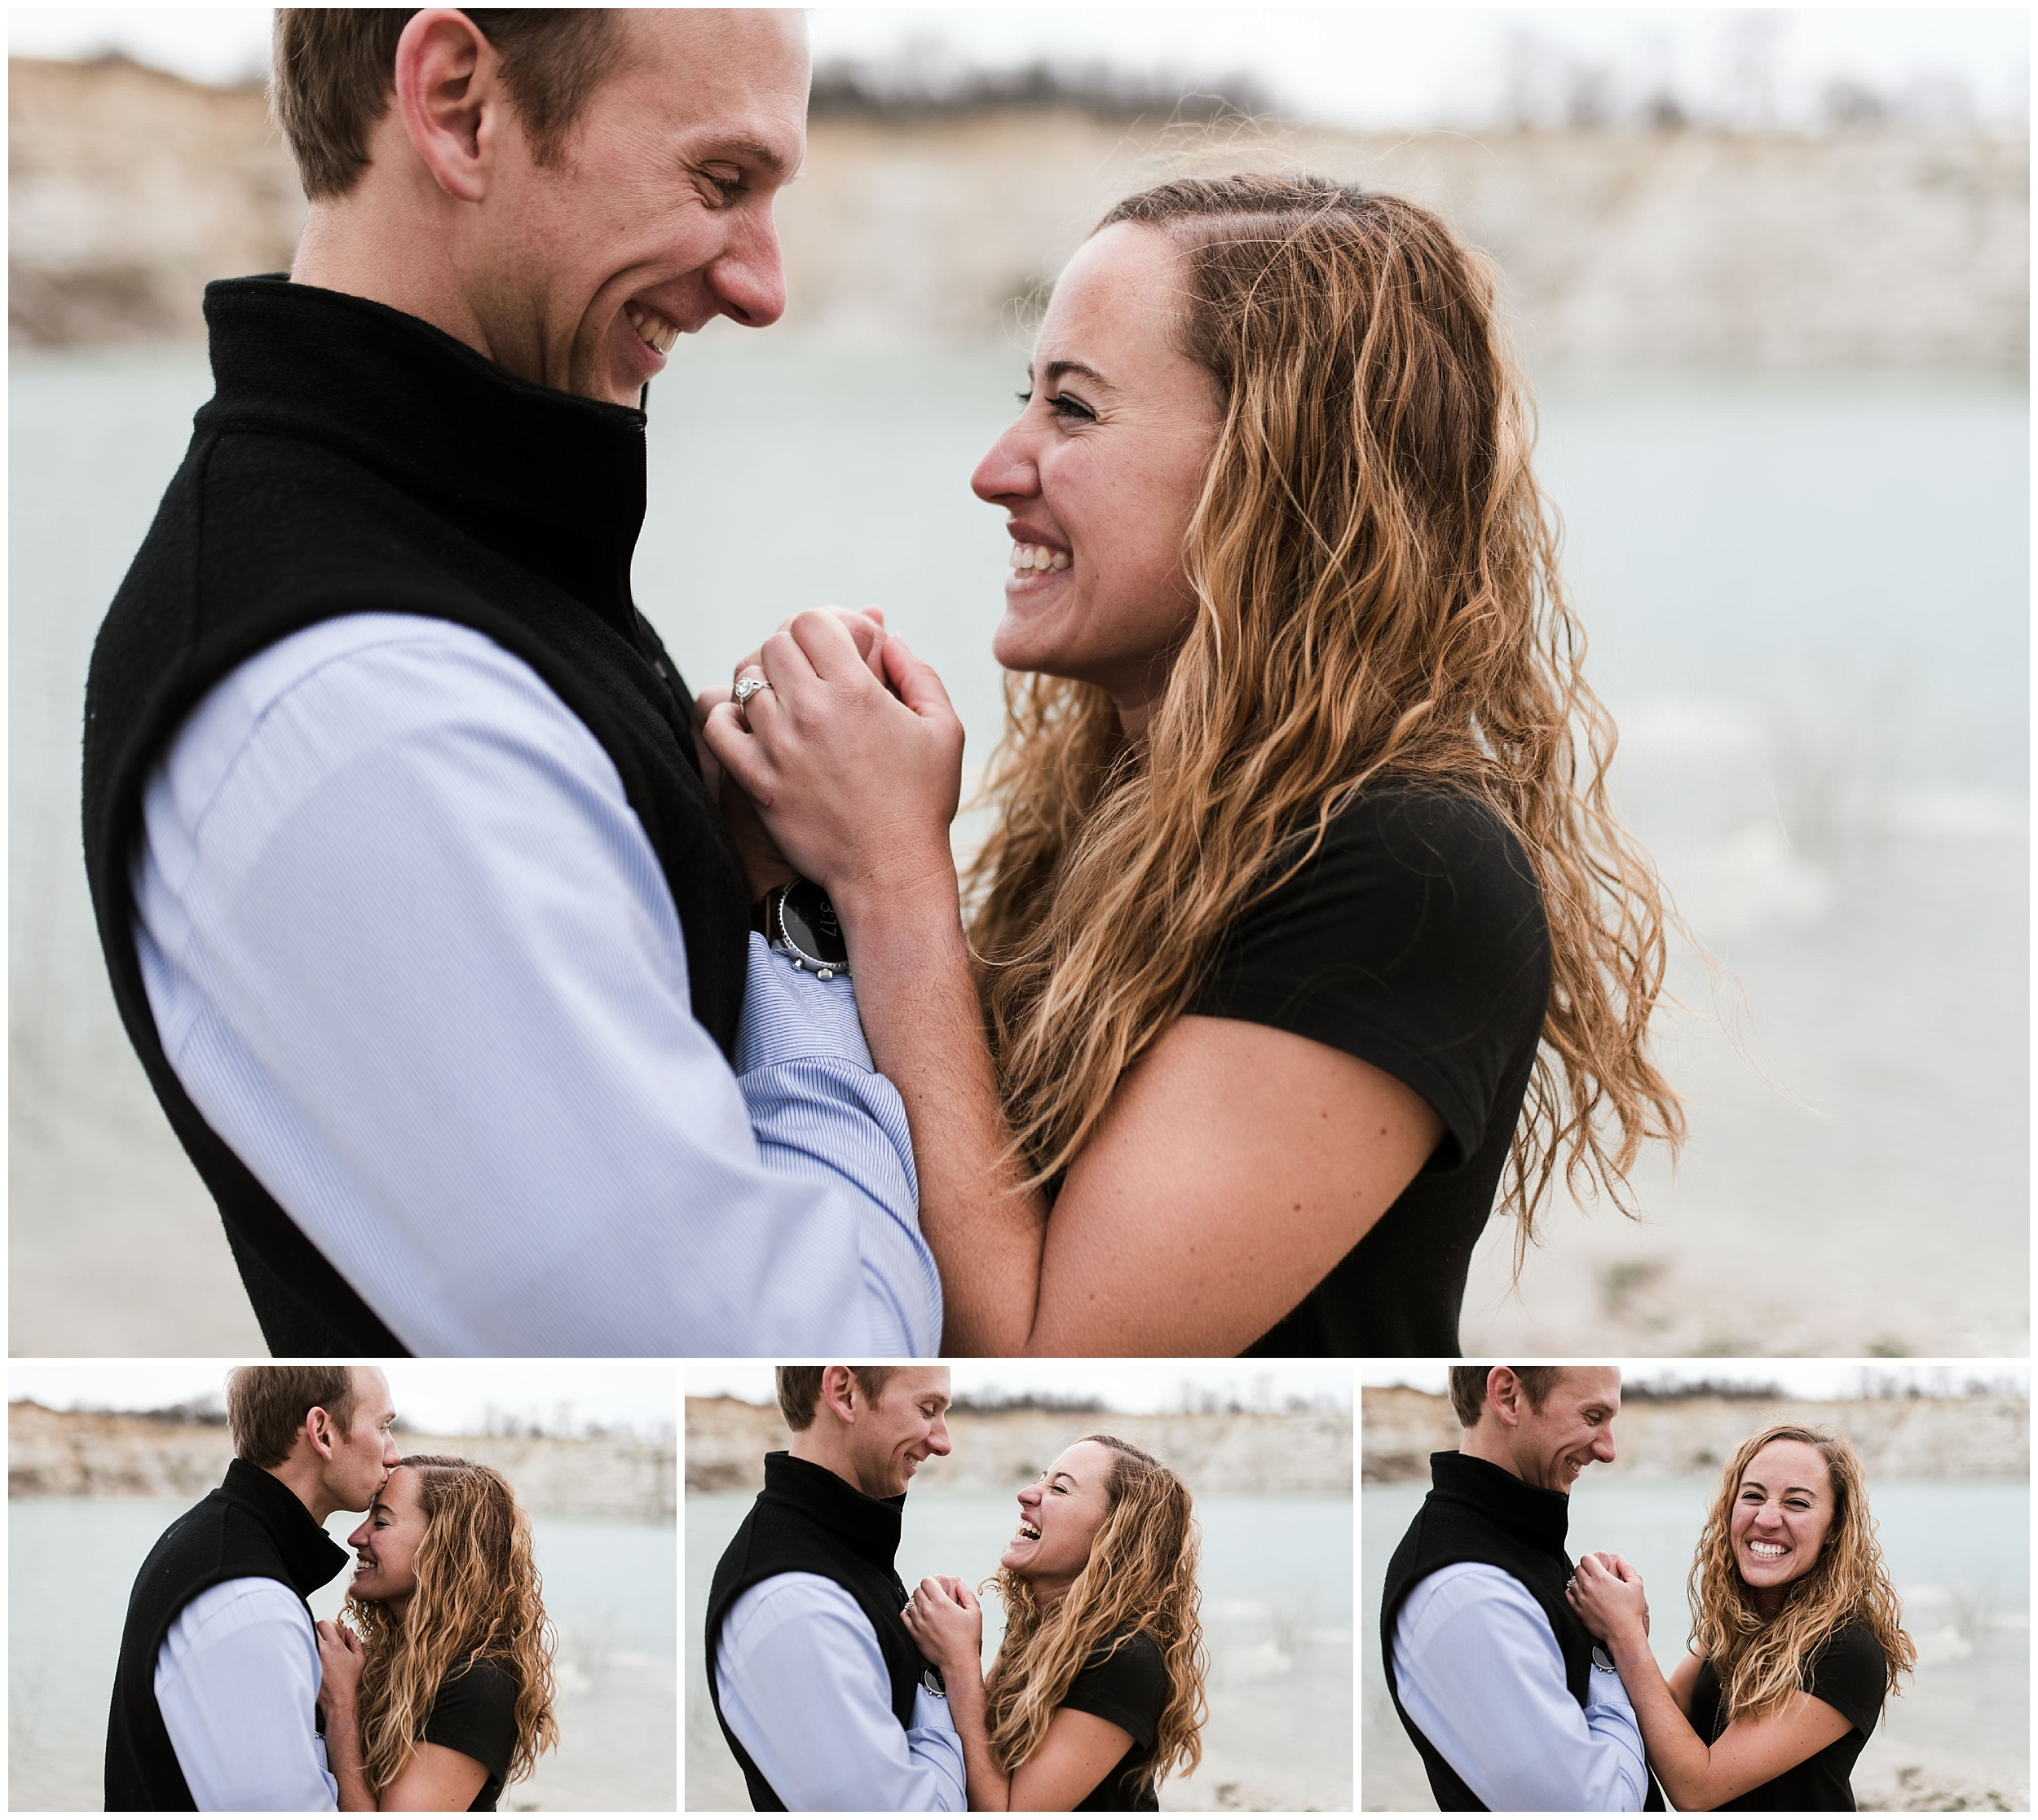 dallas proposal | dallas wedding photographer | Fort Worth wedding photographer | www.jordanmitchellphotography.com